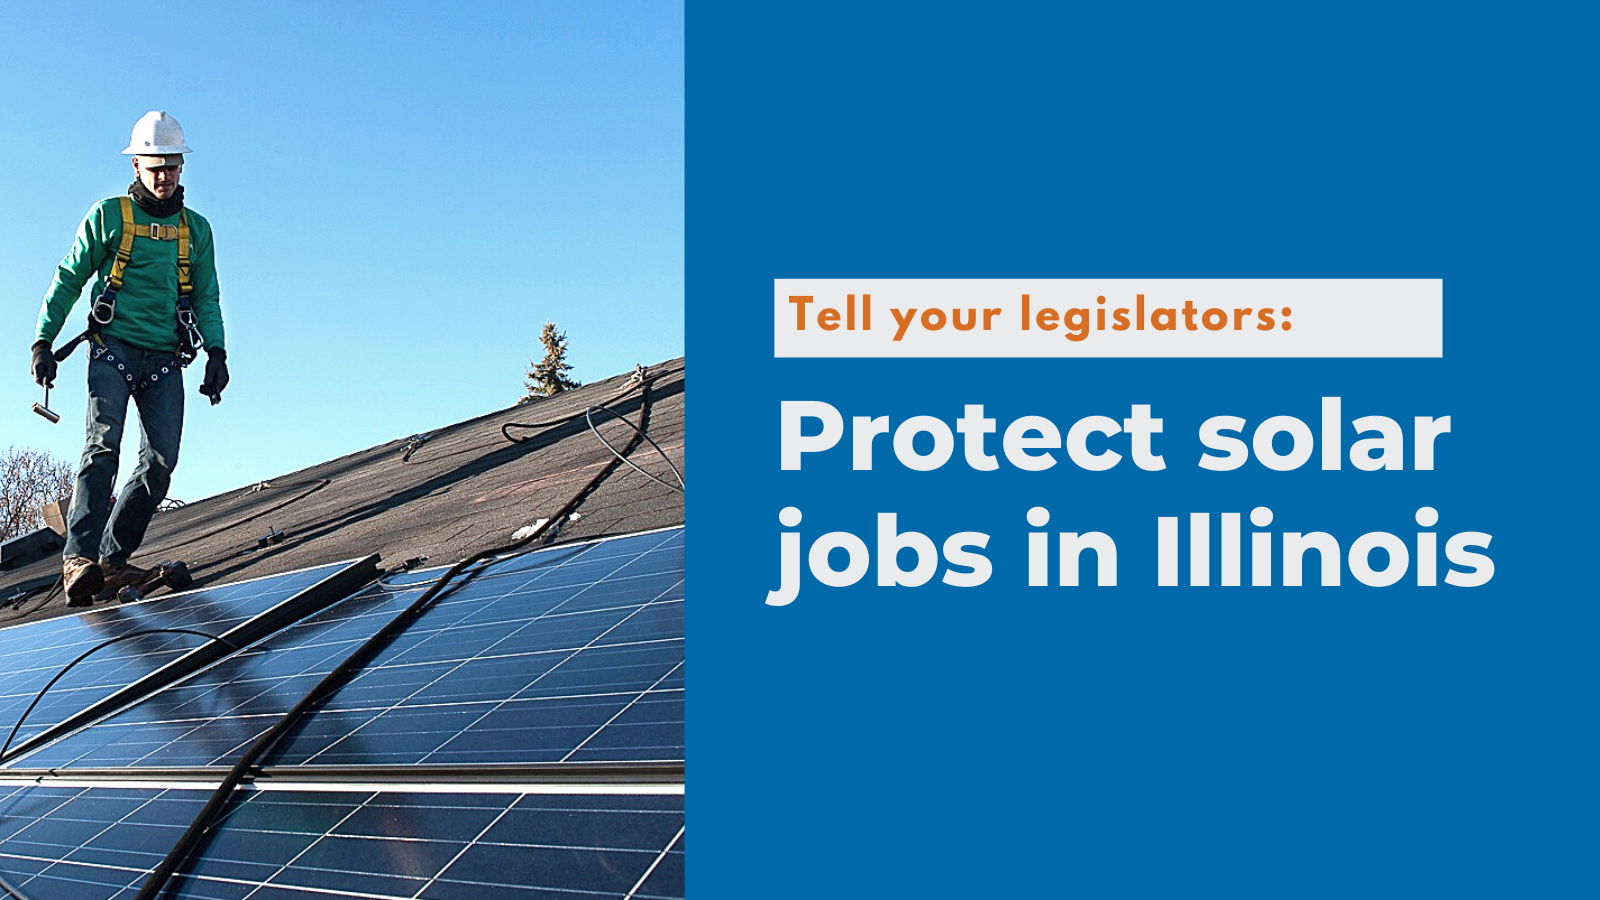 No more delays: Illinois legislators must pass climate and energy bill to protect solar jobs and frontline communities